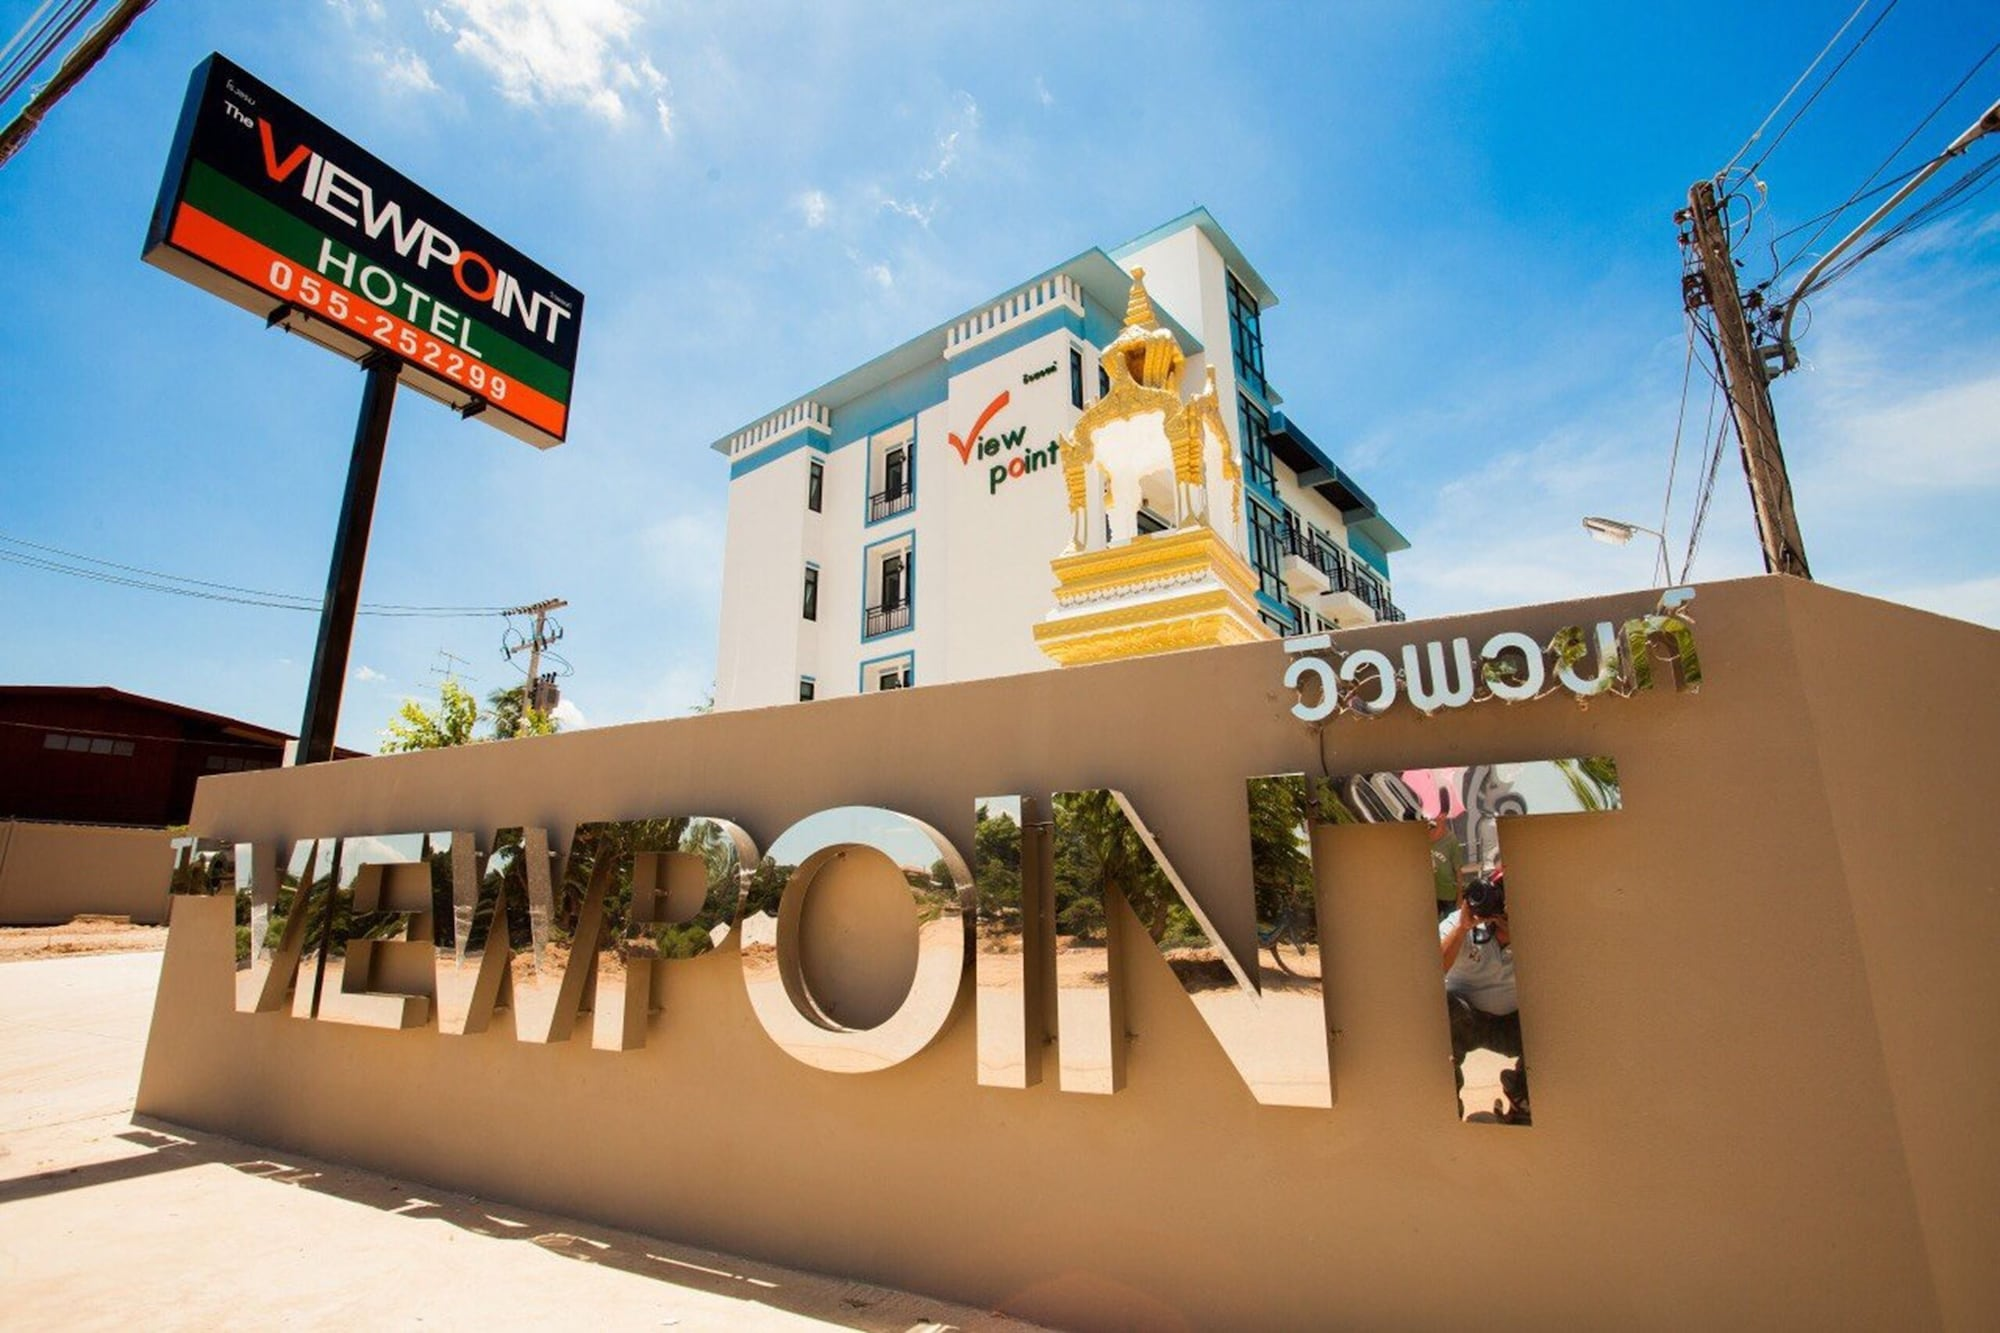 The Viewpoint Hotel, Muang Phitsanulok